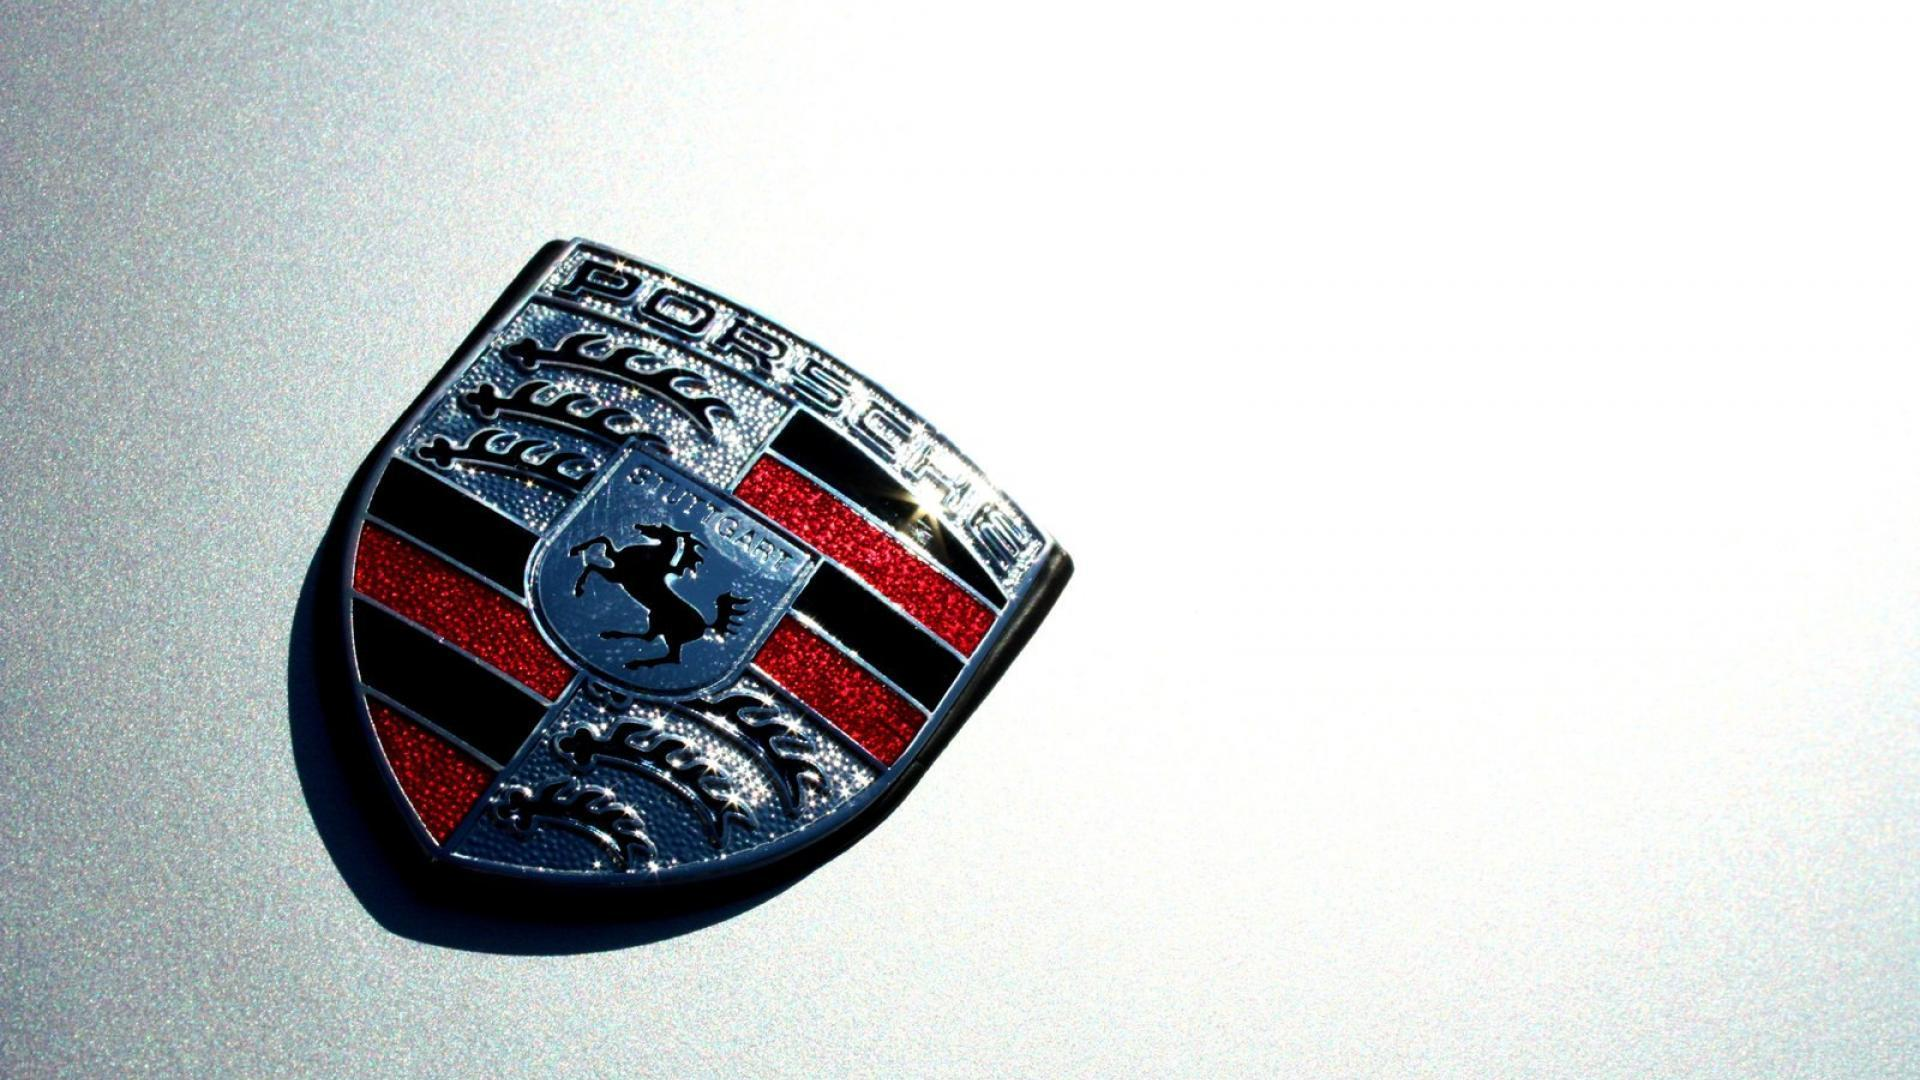 7 hd porsche logo wallpapers hdwallsourcecom